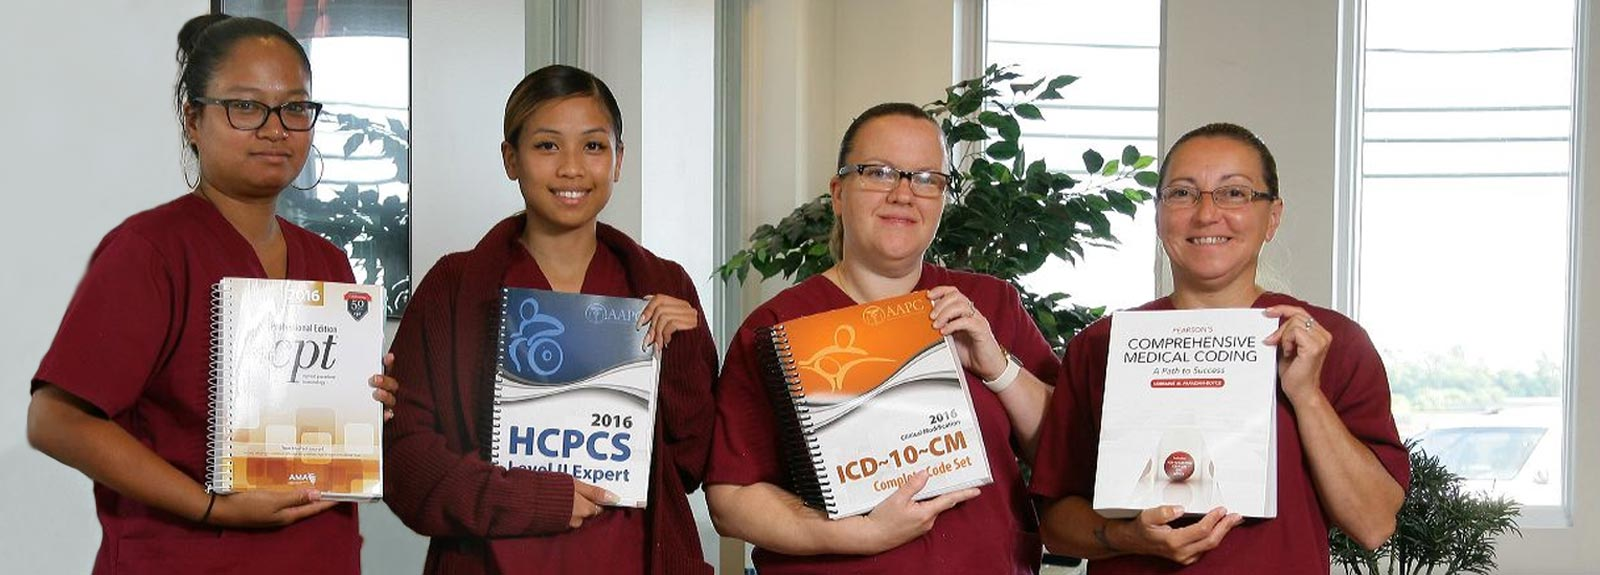 mtti career training school rhode island and massachusetts mtti medical billing coding students holding hospital and health care coding text books